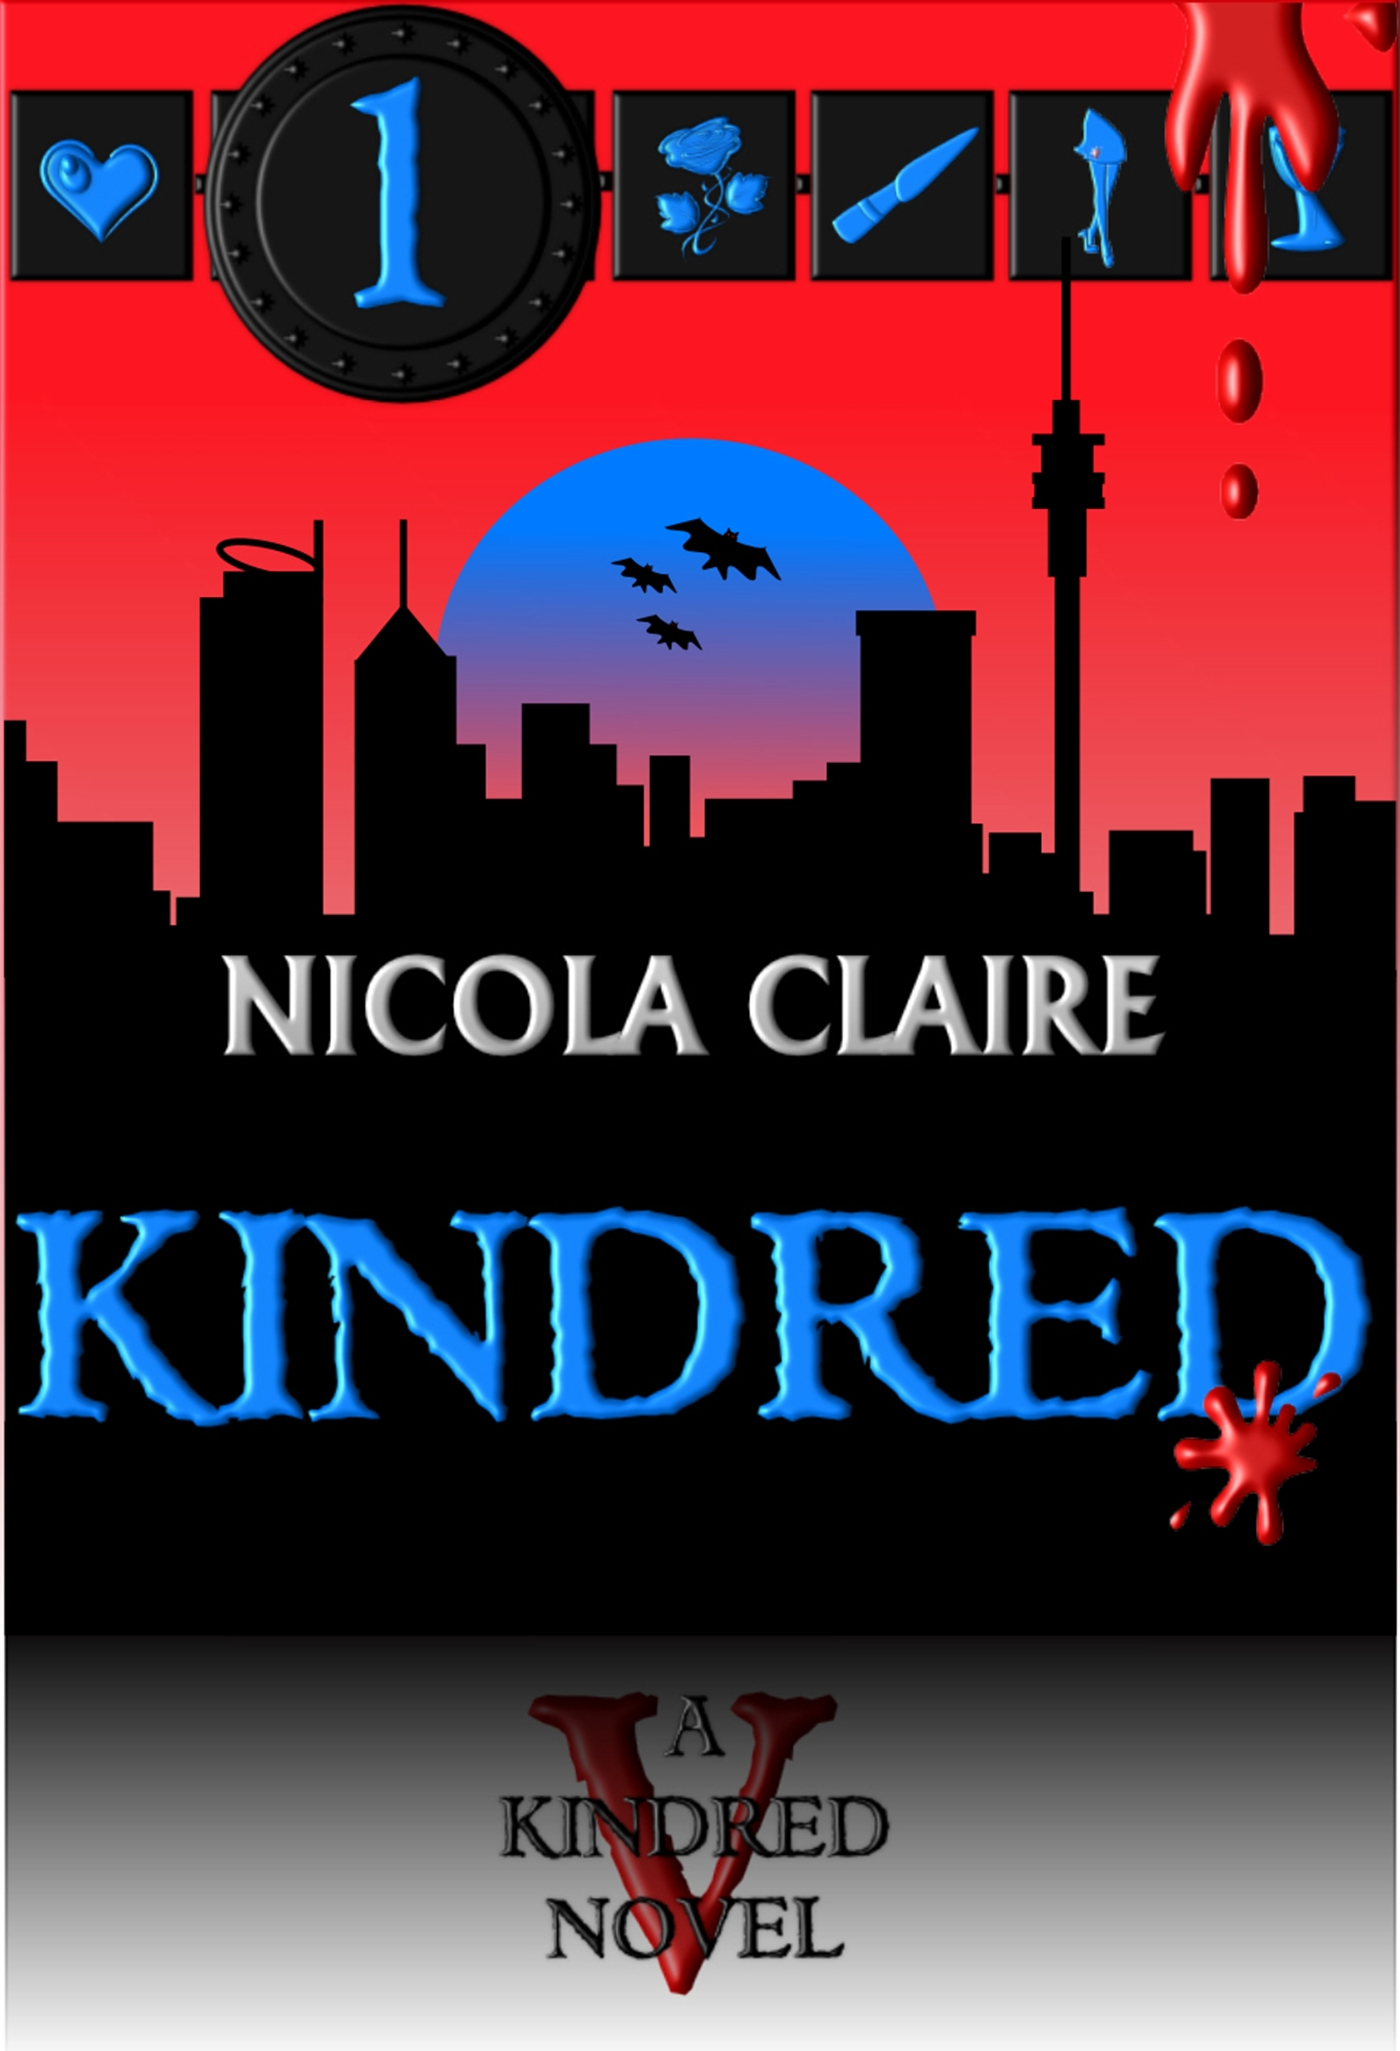 Kindred (Kindred, Book 1)